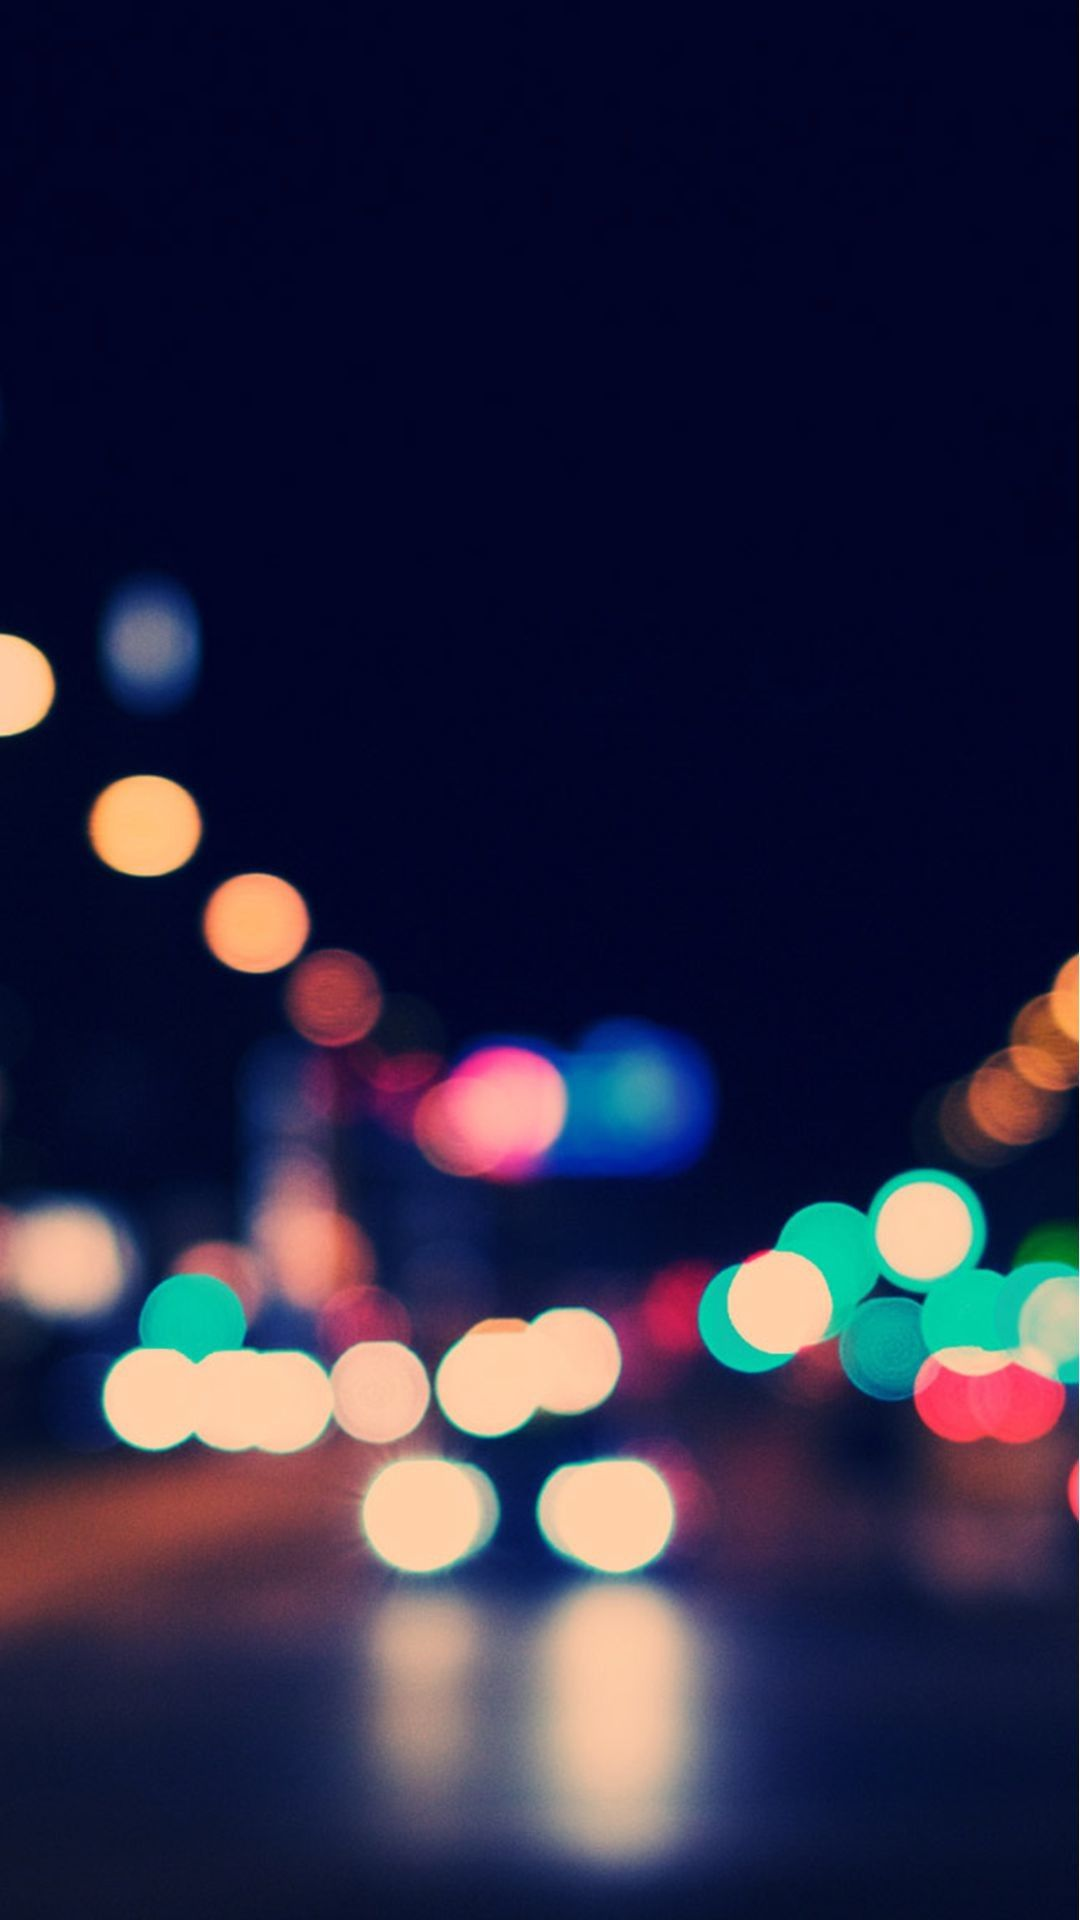 Lights iPhone Wallpapers - Top Free ...